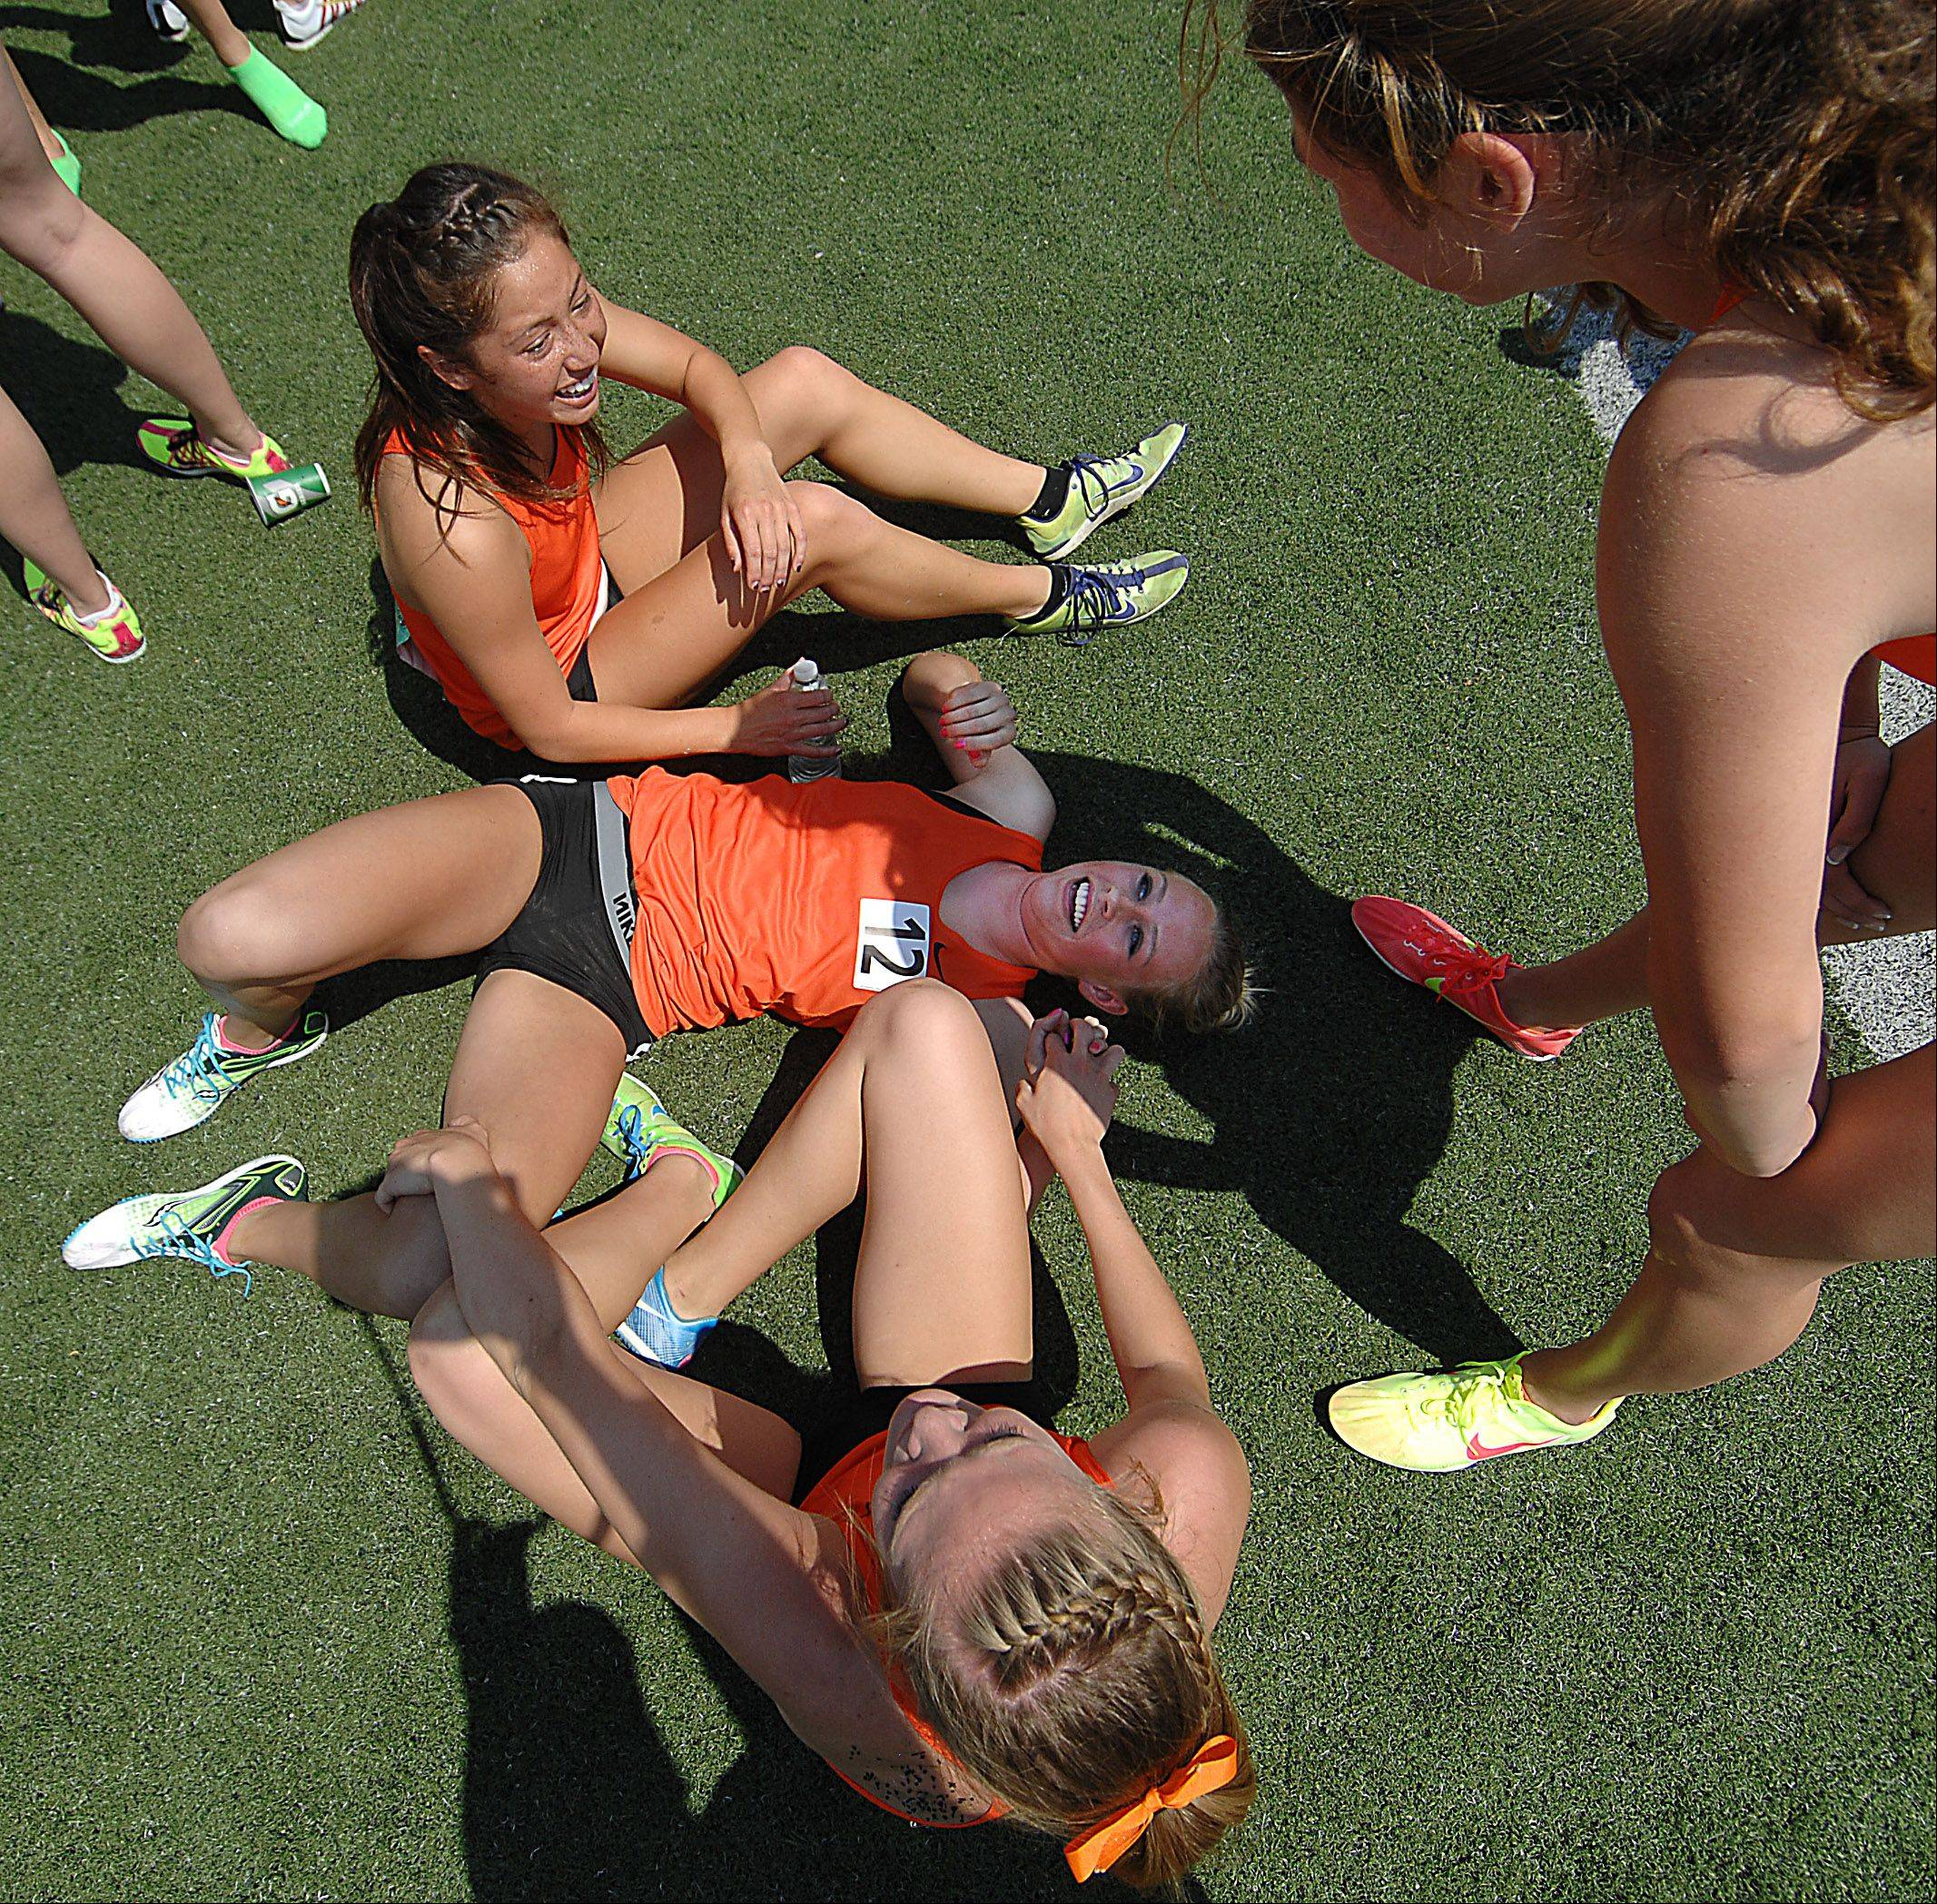 John Starks/jstarks@dailyherald.com ¬ Wheaton Warrenville South's McKenna Kiple lays on the ground as teammates Amy Yong, top, Hope Schmelzle, bottom, and Erin Hermann laugh with her after they set a meet record in the 3,200 meter relay Saturday at the Illinois High School Association girls state track and field finals at O'Brien Stadium at Eastern Illinois University in Charleston.